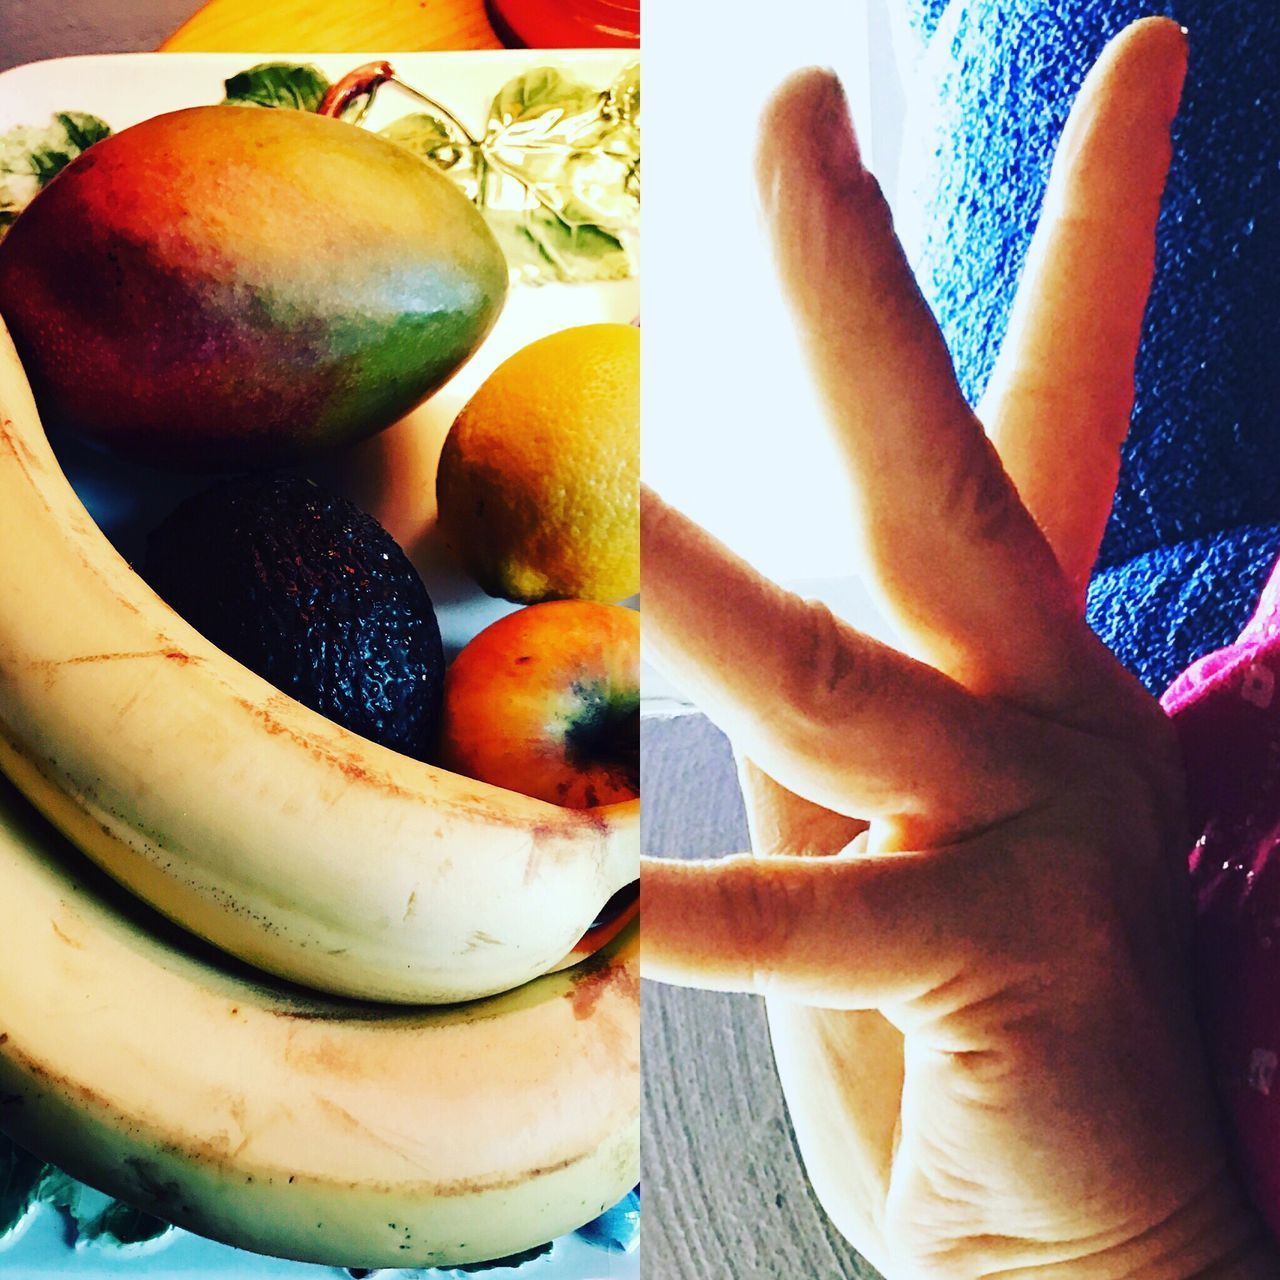 fruit, food and drink, human hand, food, real people, banana, healthy eating, one person, freshness, apple - fruit, indoors, human body part, lifestyles, day, close-up, ready-to-eat, people